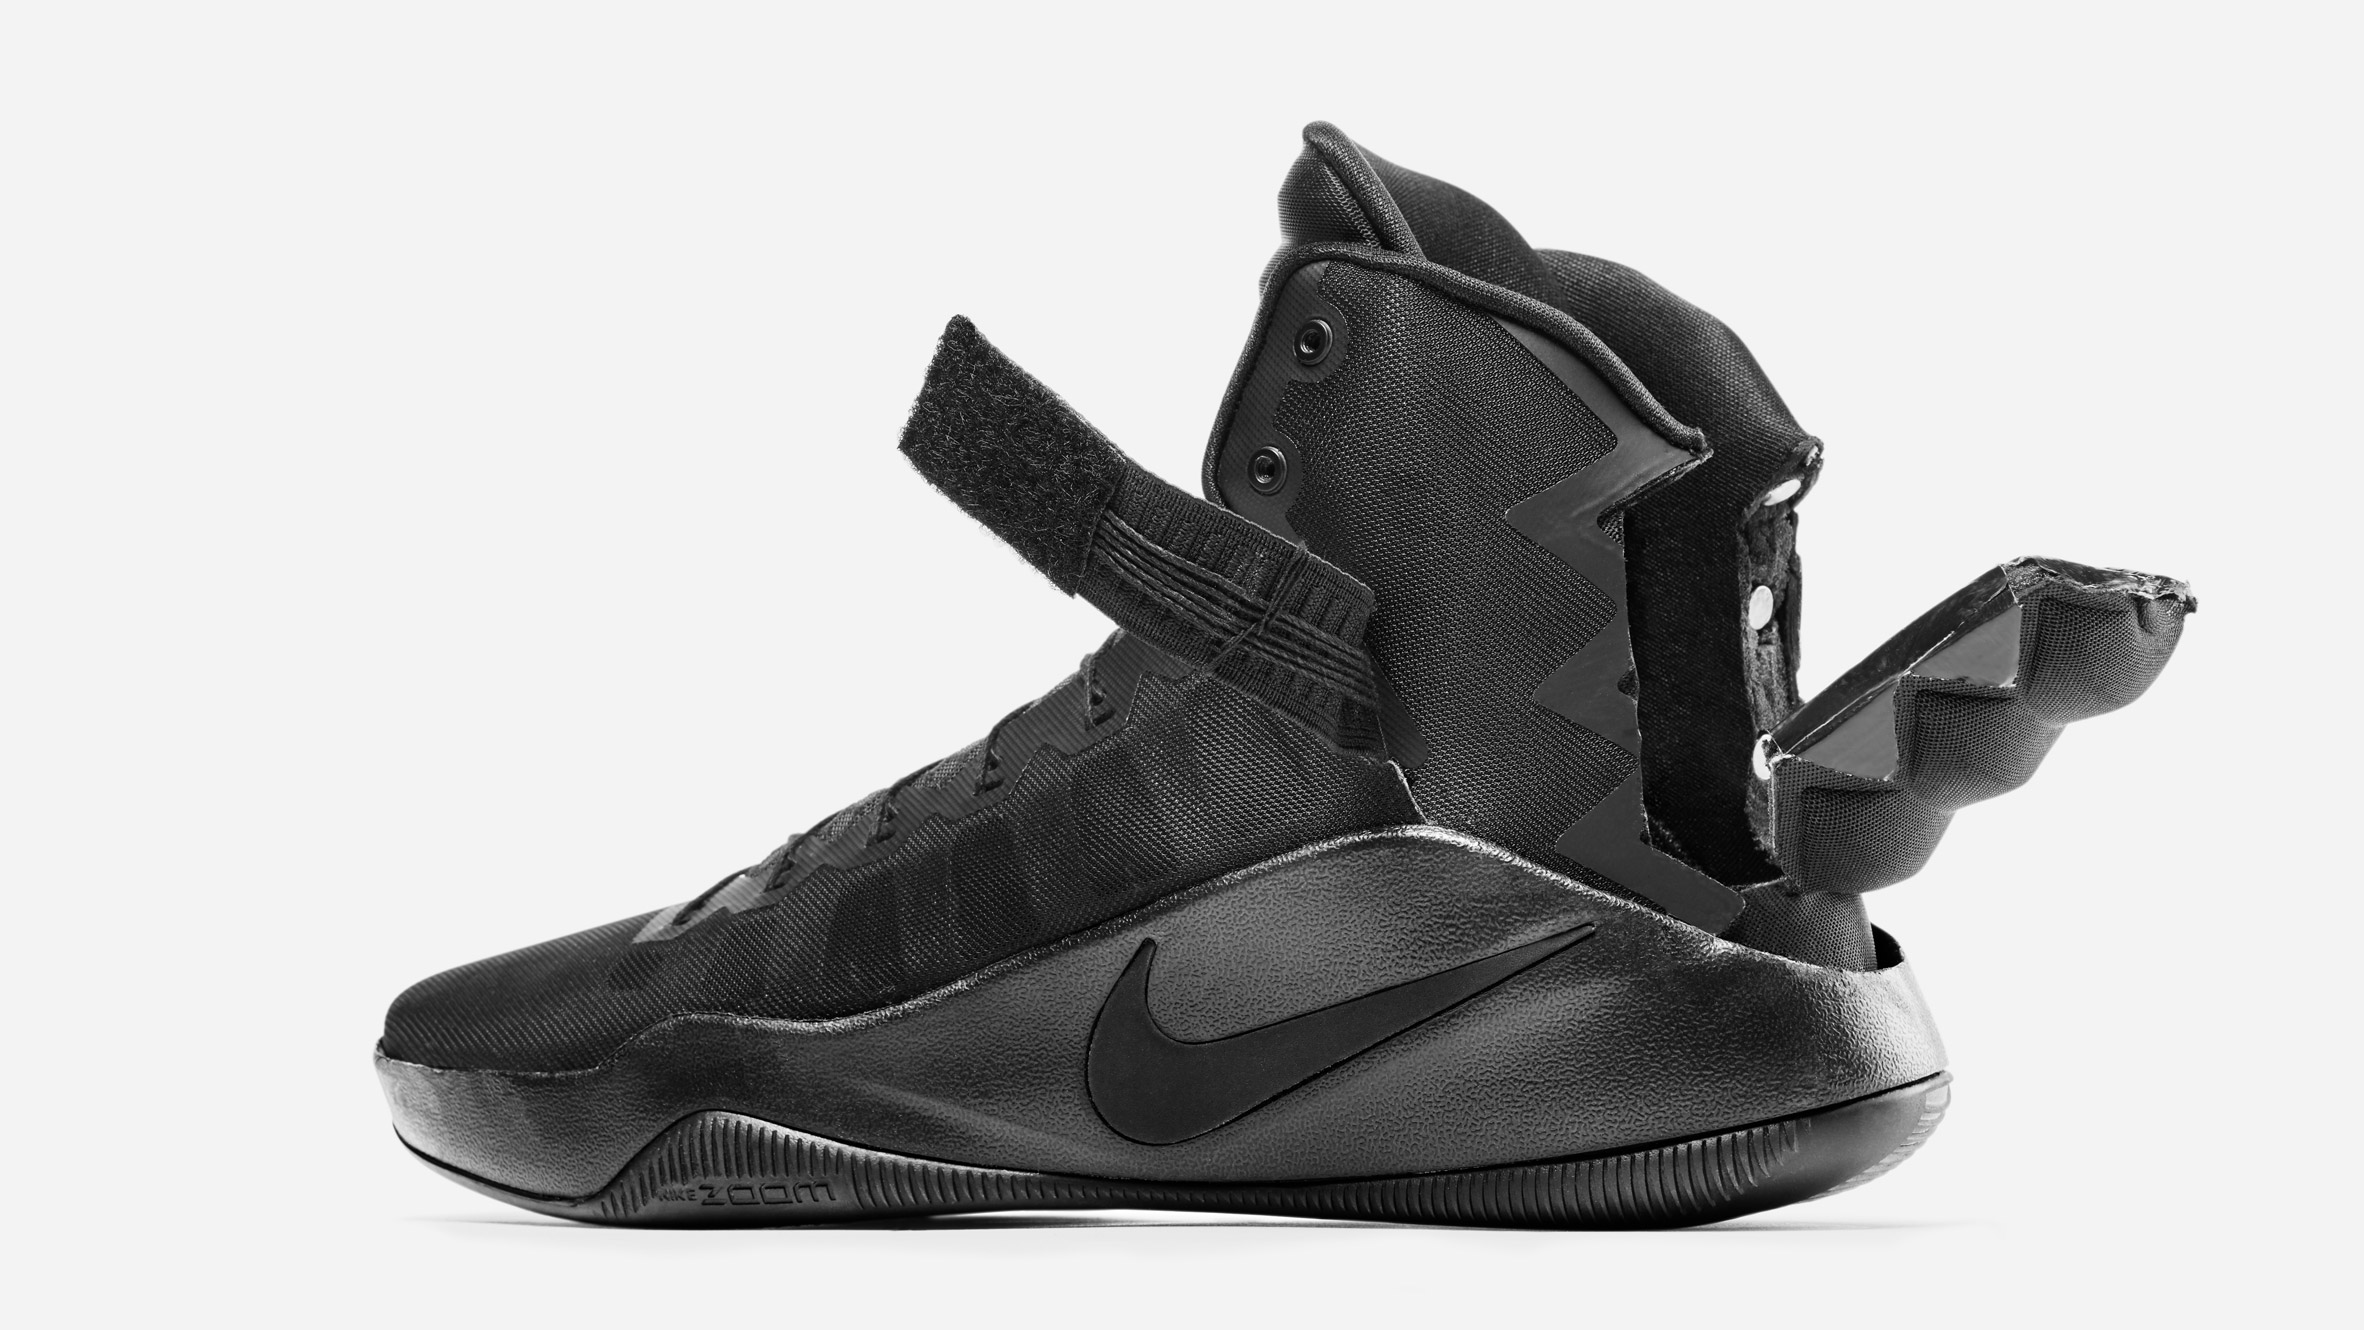 54f516bbcbd5 Nike announces trainers with